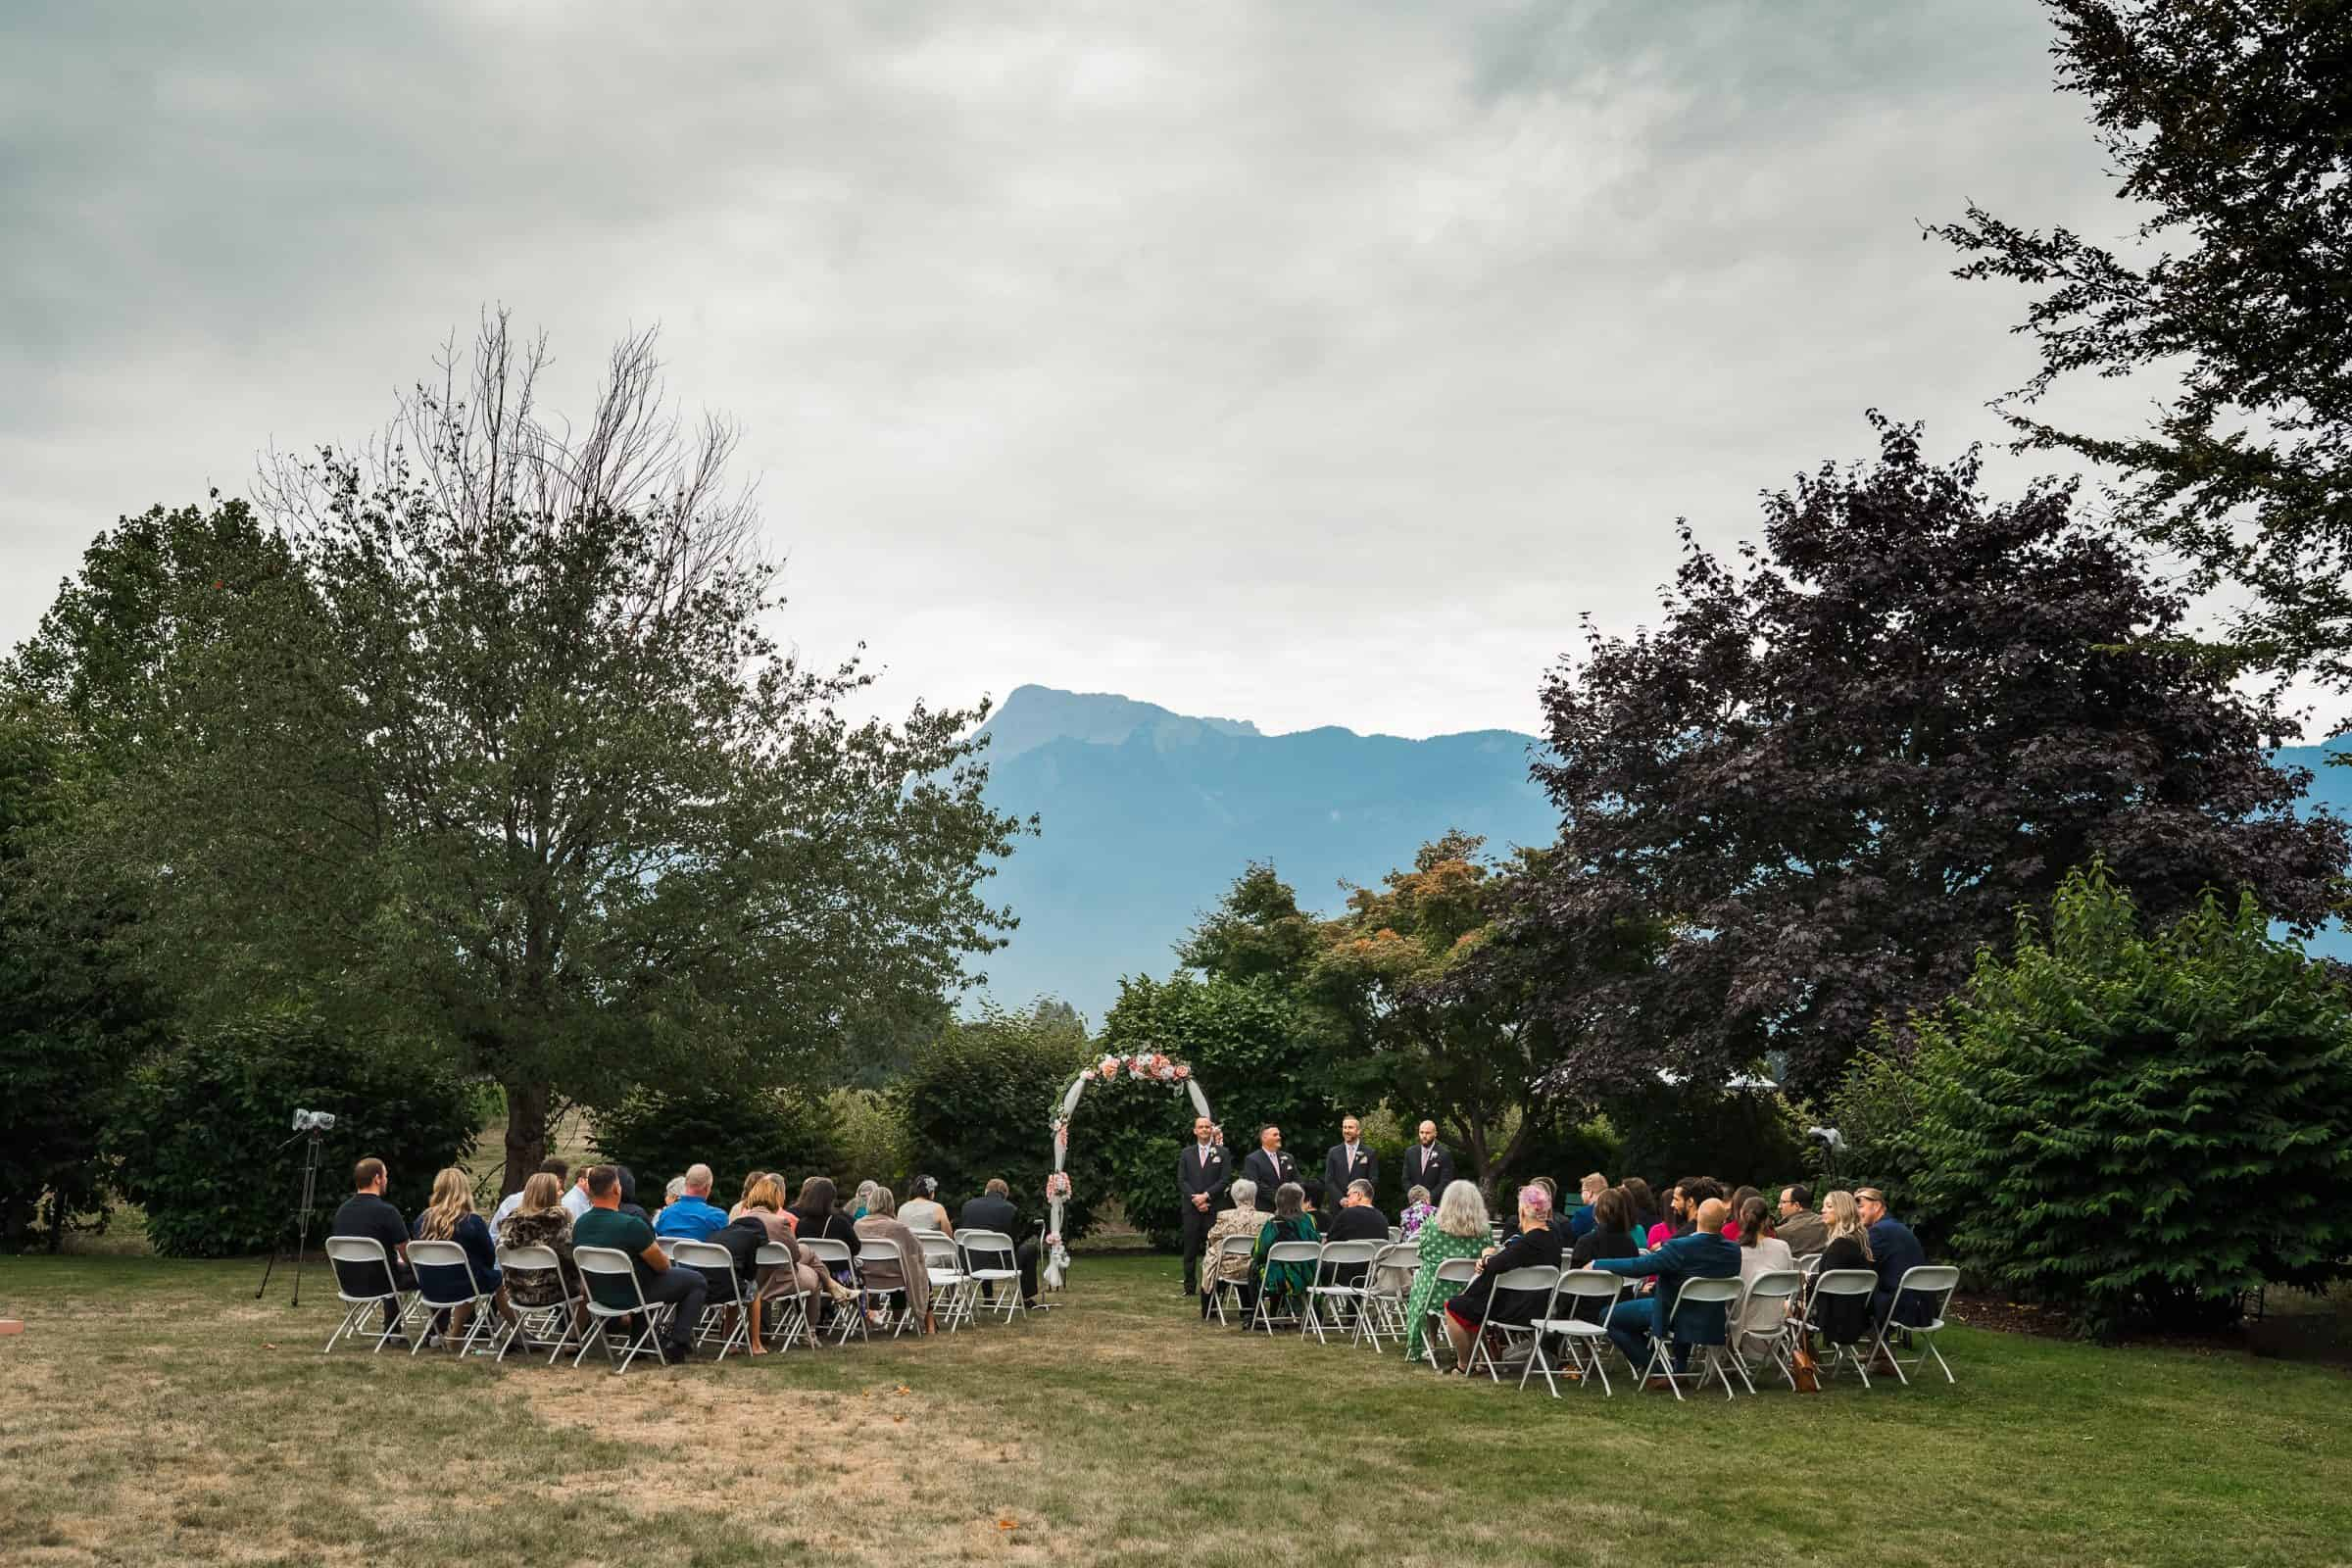 pullback of outdoor wedding ceremony with mountains in the background